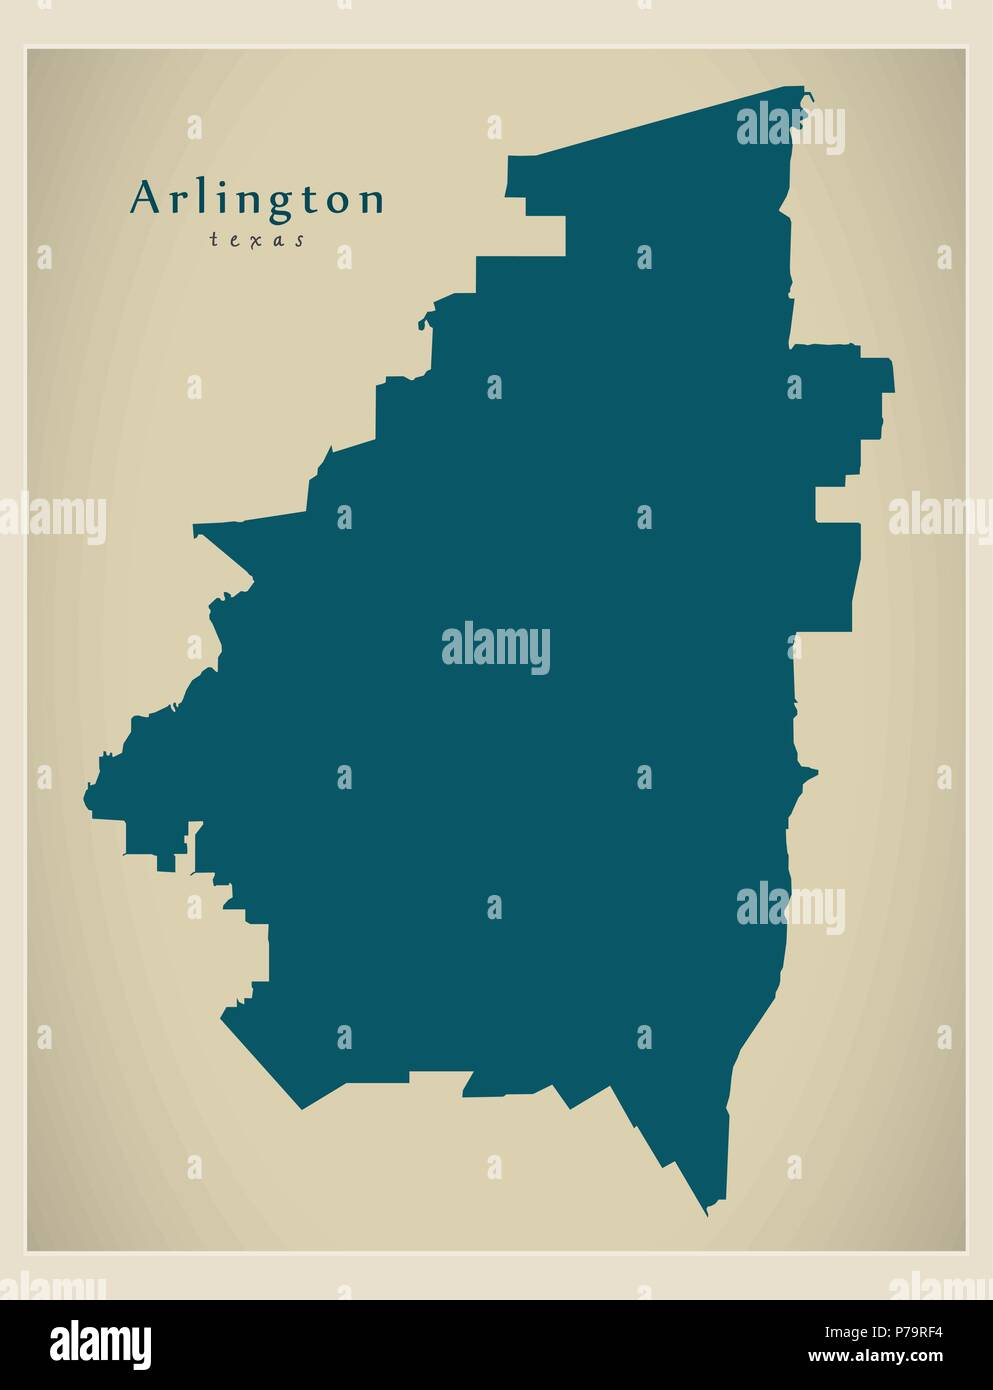 Map Of Texas City.Modern City Map Arlington Texas City Of The Usa Stock Vector Art